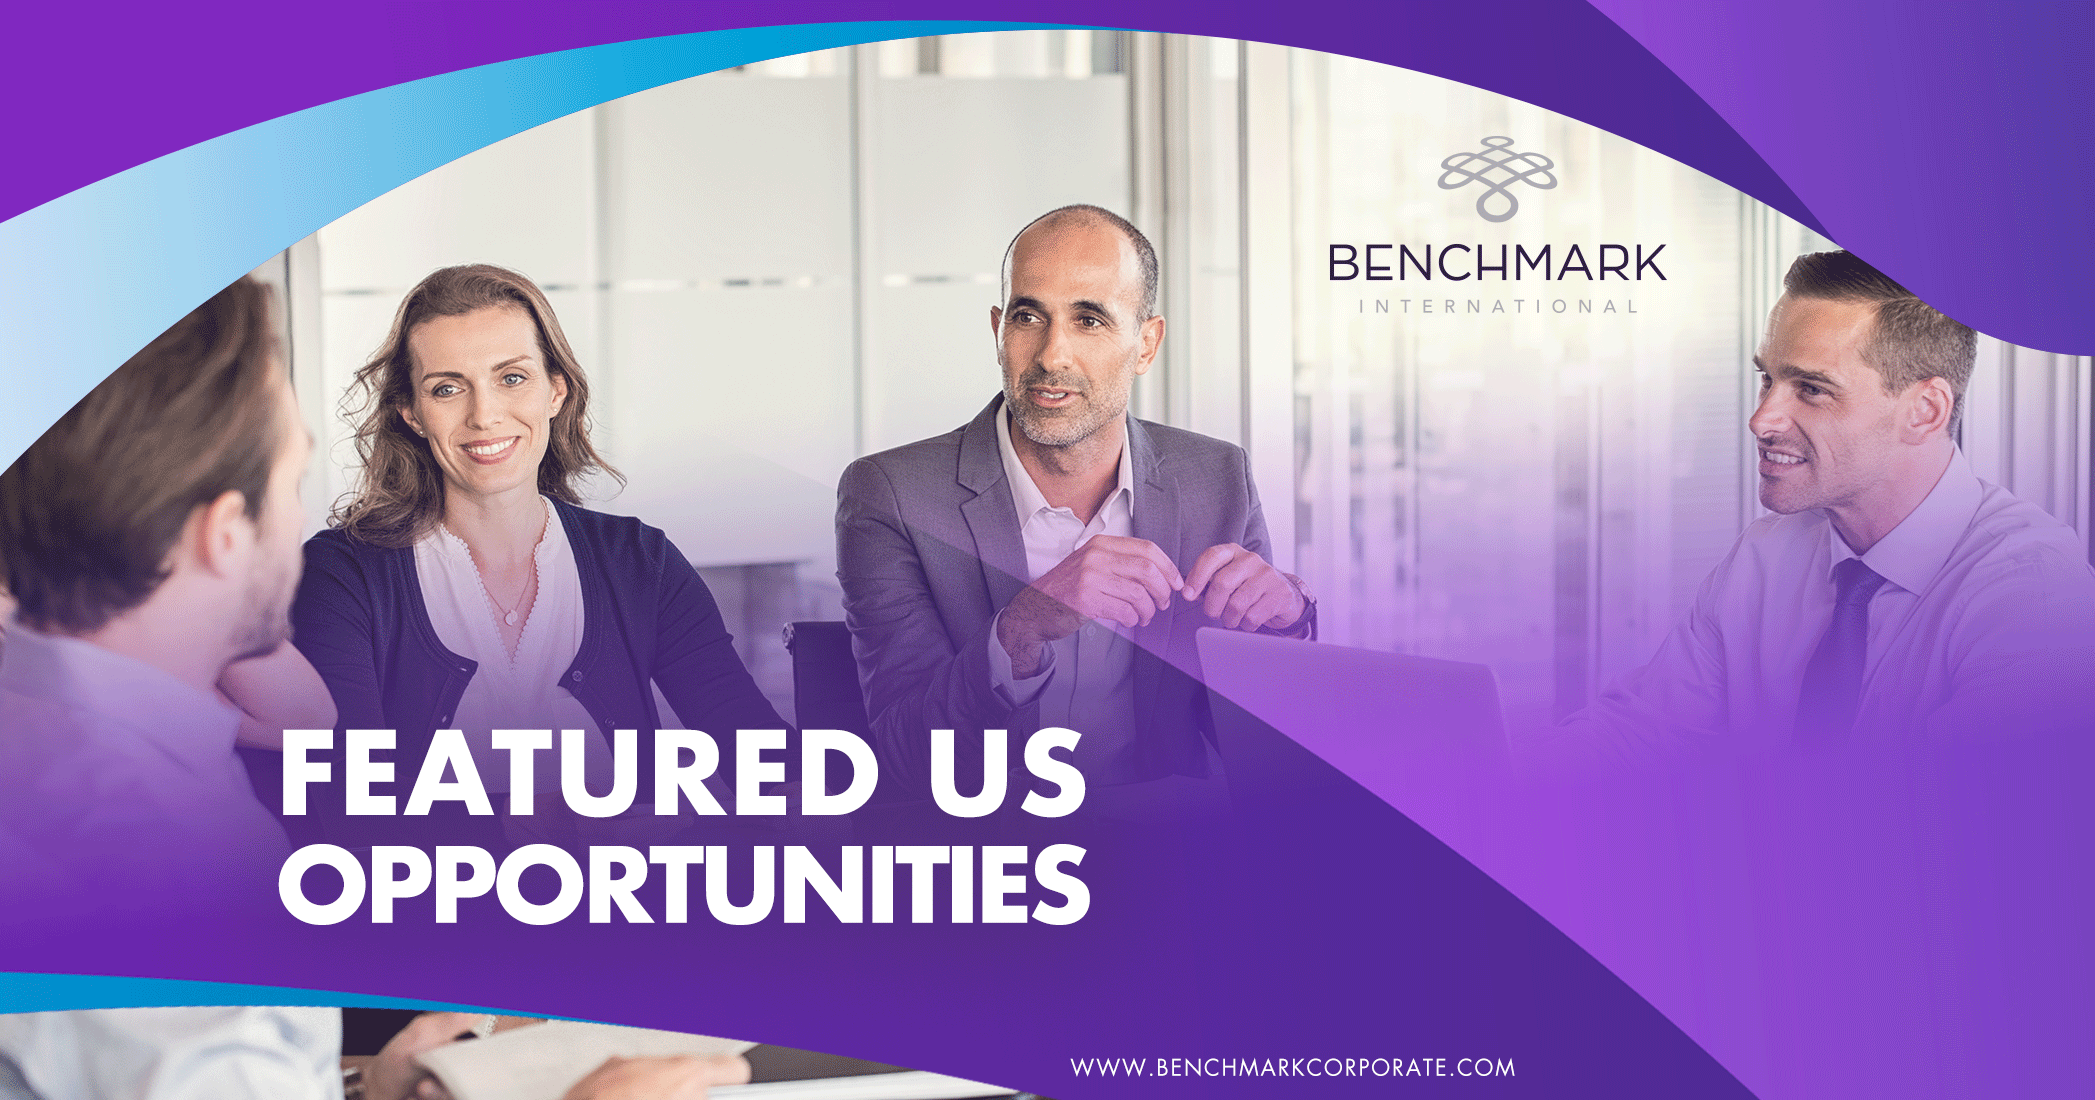 View Our Exclusive US Opportunities